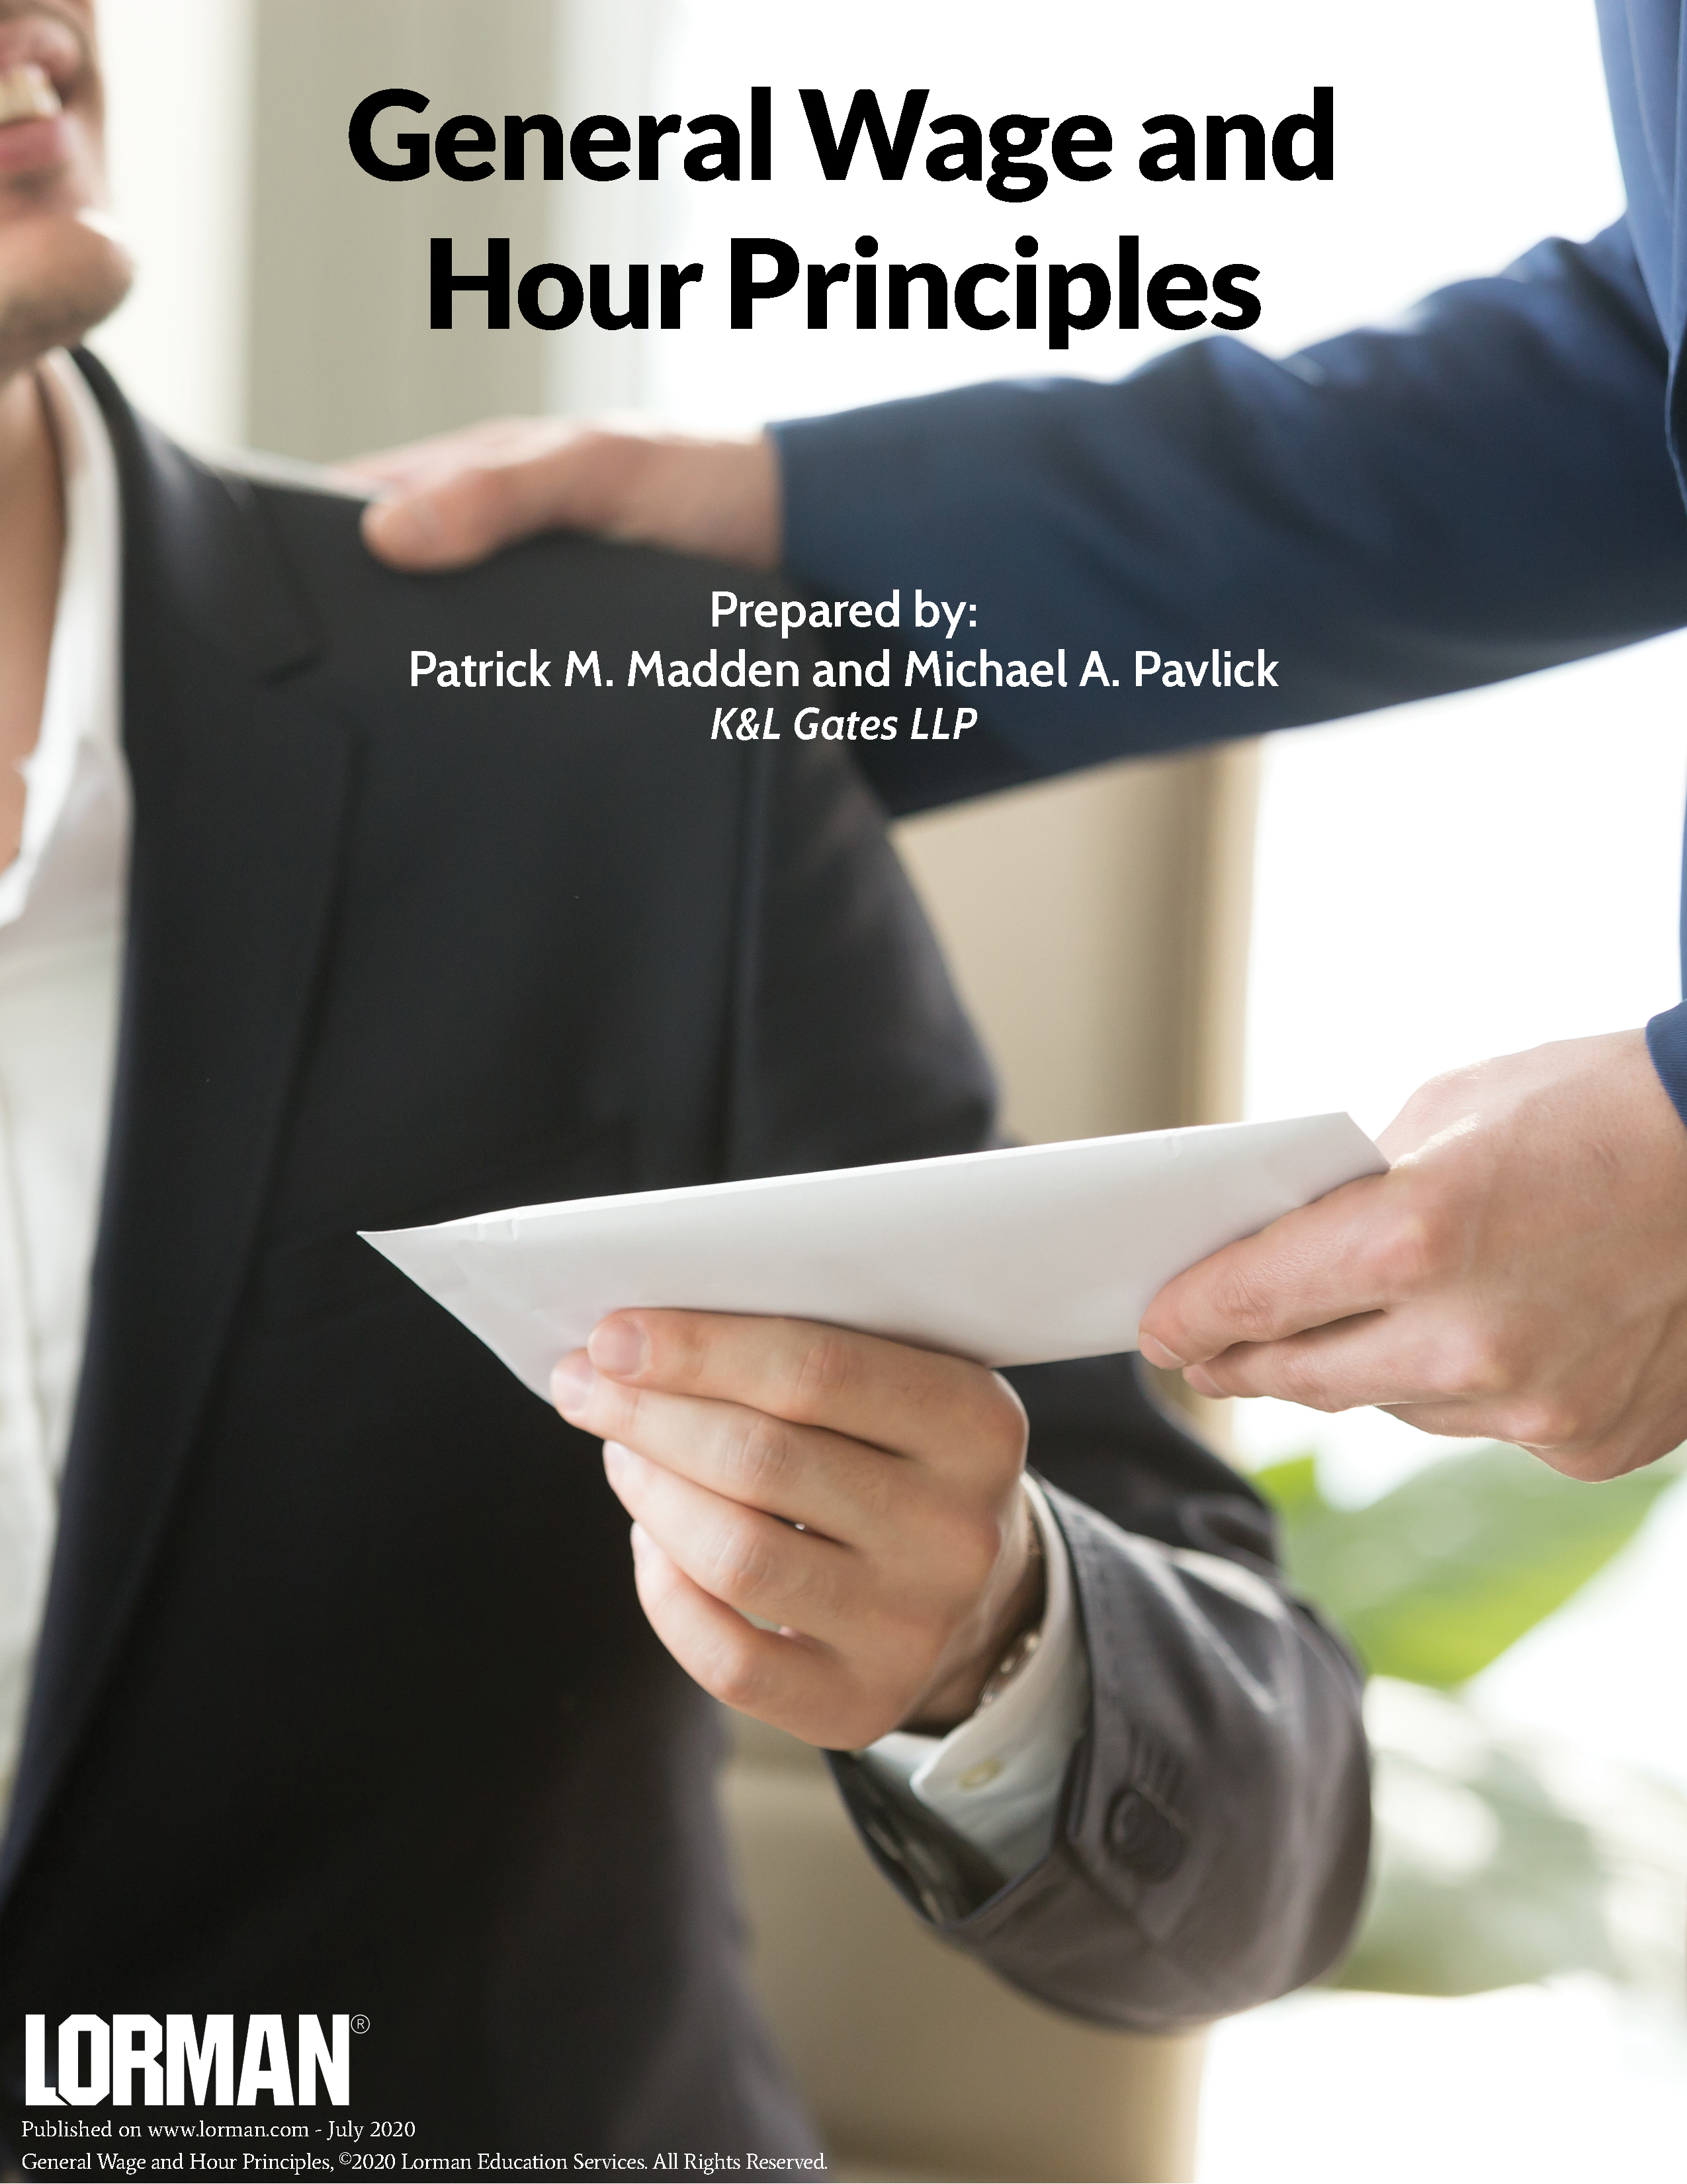 General Wage and Hour Principles